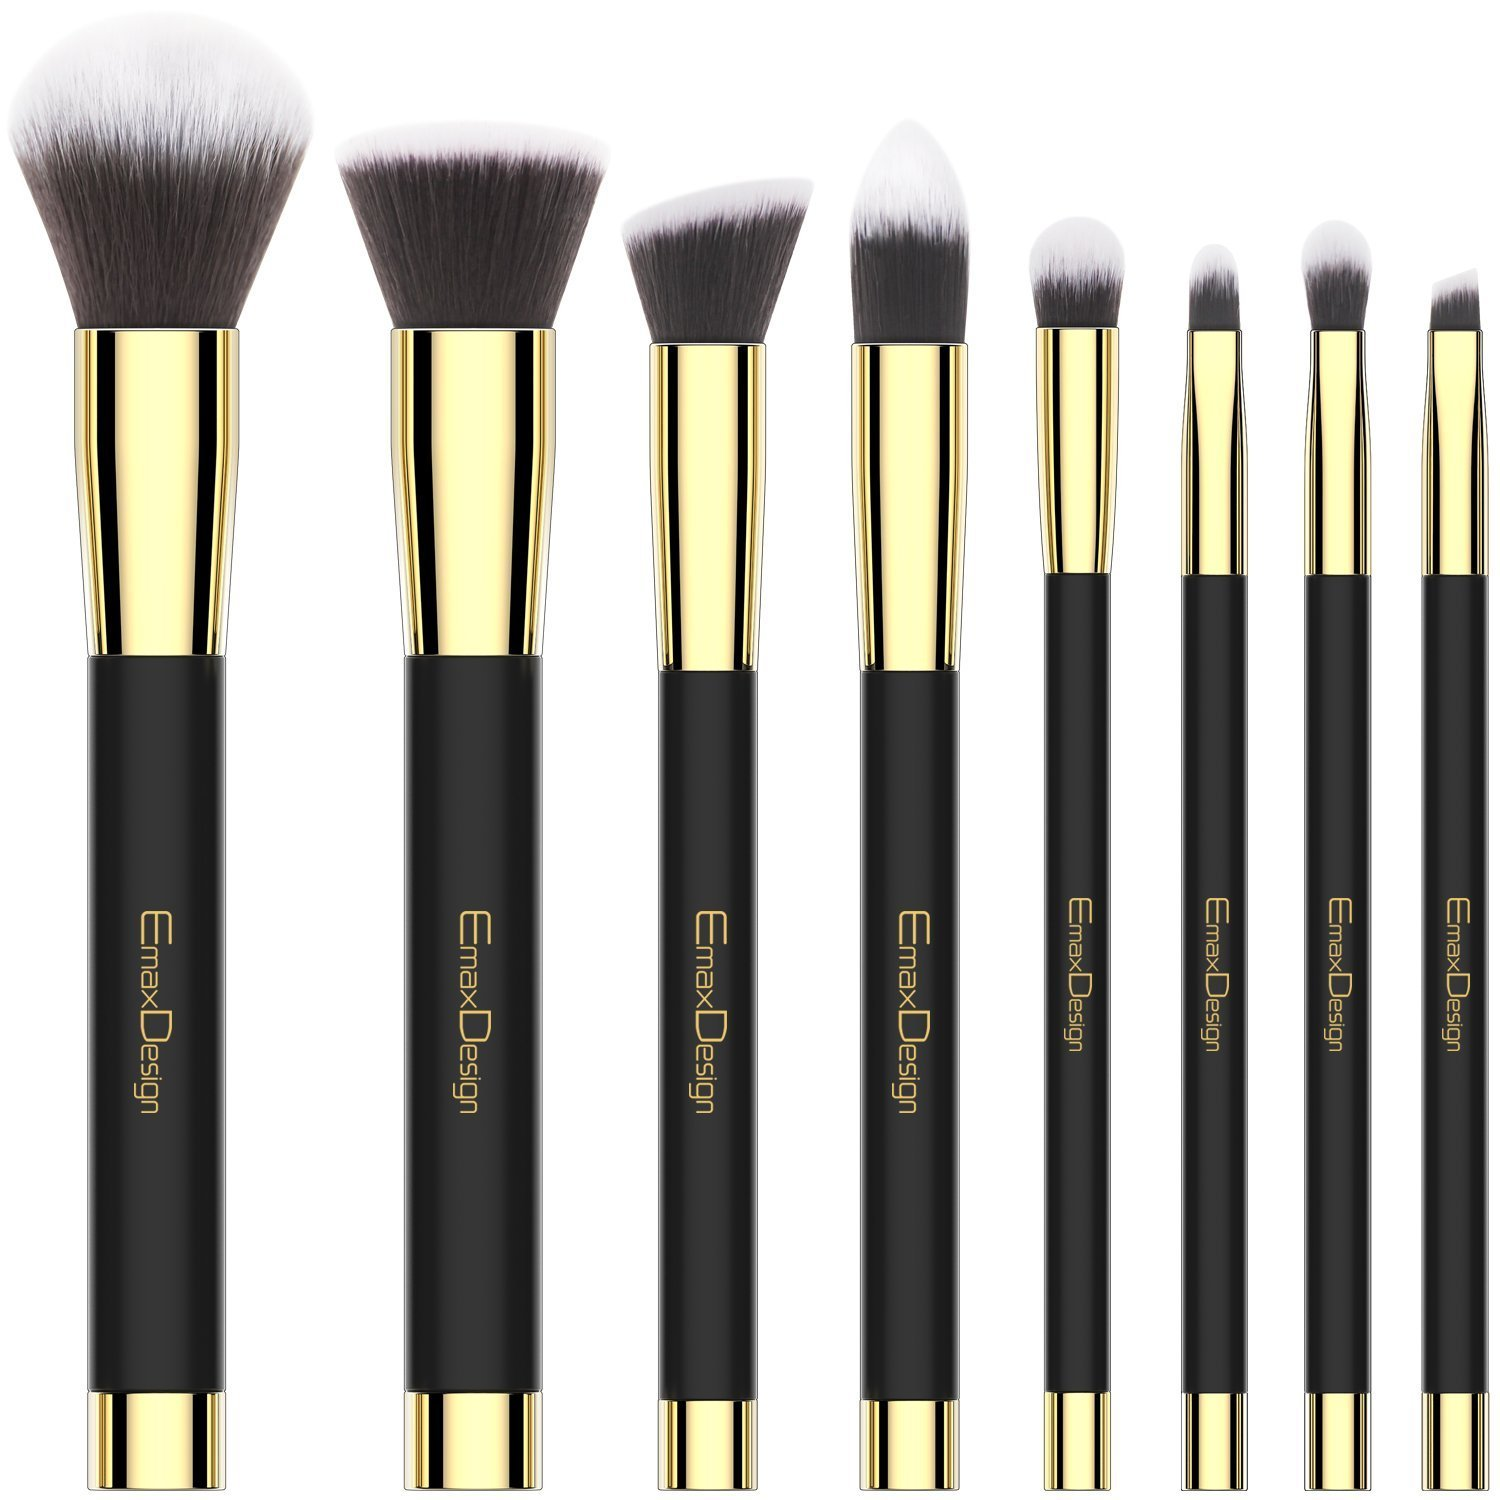 2e957ede3d195 Amazon.com  Makeup Brushes EmaxDesign 8 Pieces Makeup Brush Set Face Eye  Shadow Eyeliner Foundation Blush Lip Powder Liquid Cream Cosmetics Blending  Brush ...